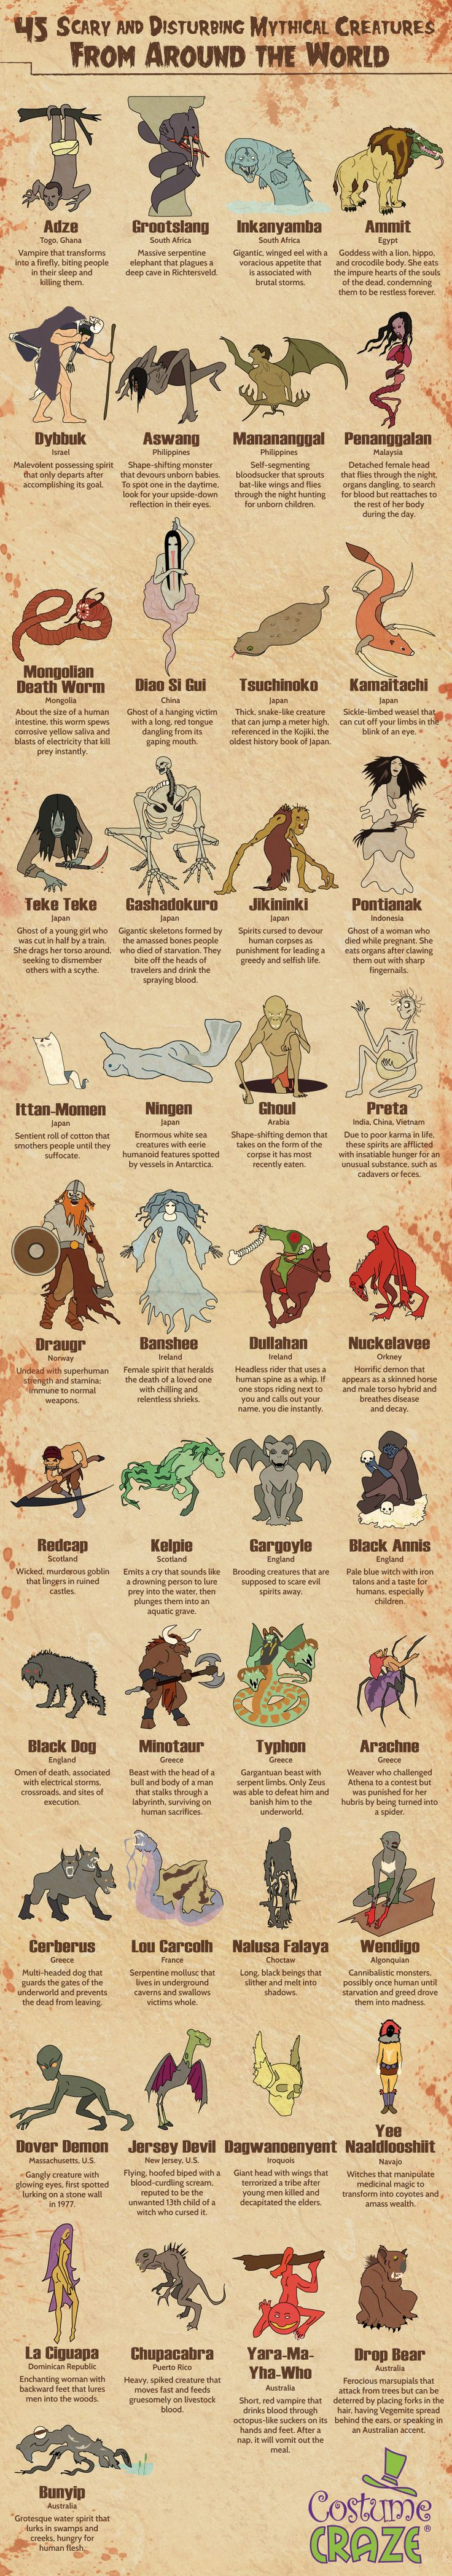 The monsters, ghosts, witches, and mythical creatures that may or may not be lurking around the world